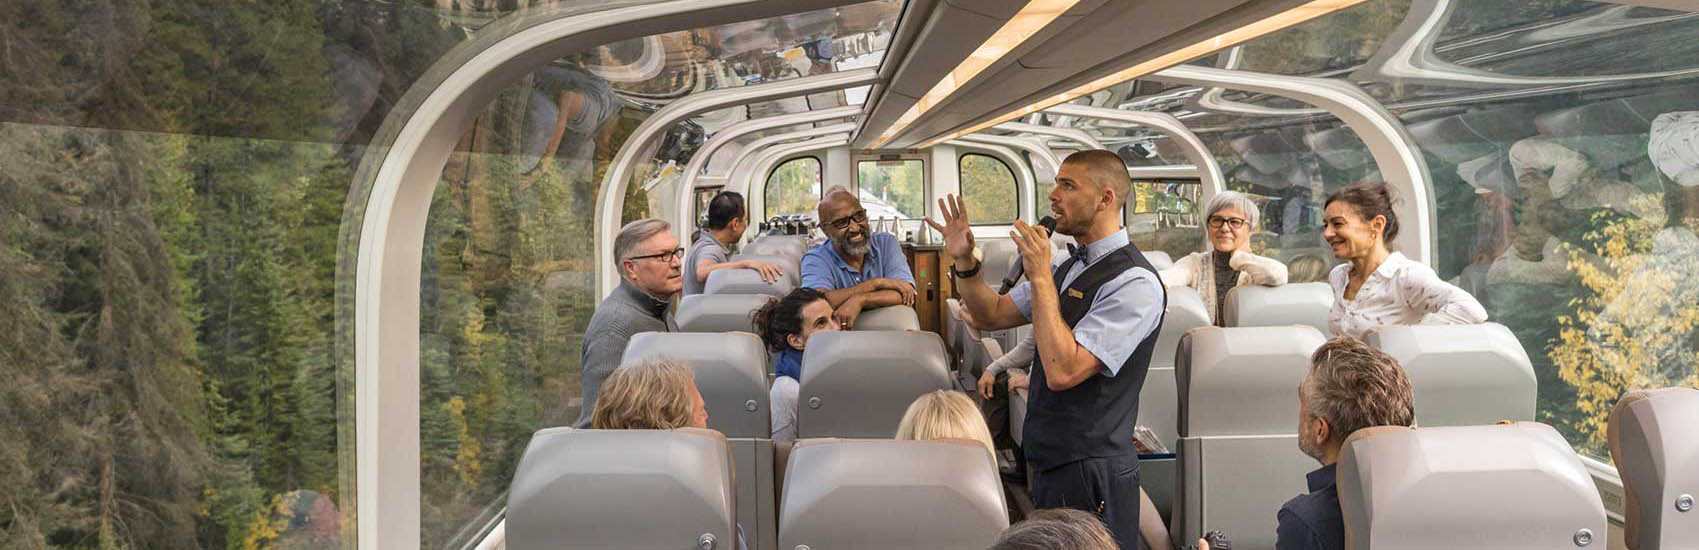 See the peaks of the majestic Mountains with Rocky Mountaineer 2